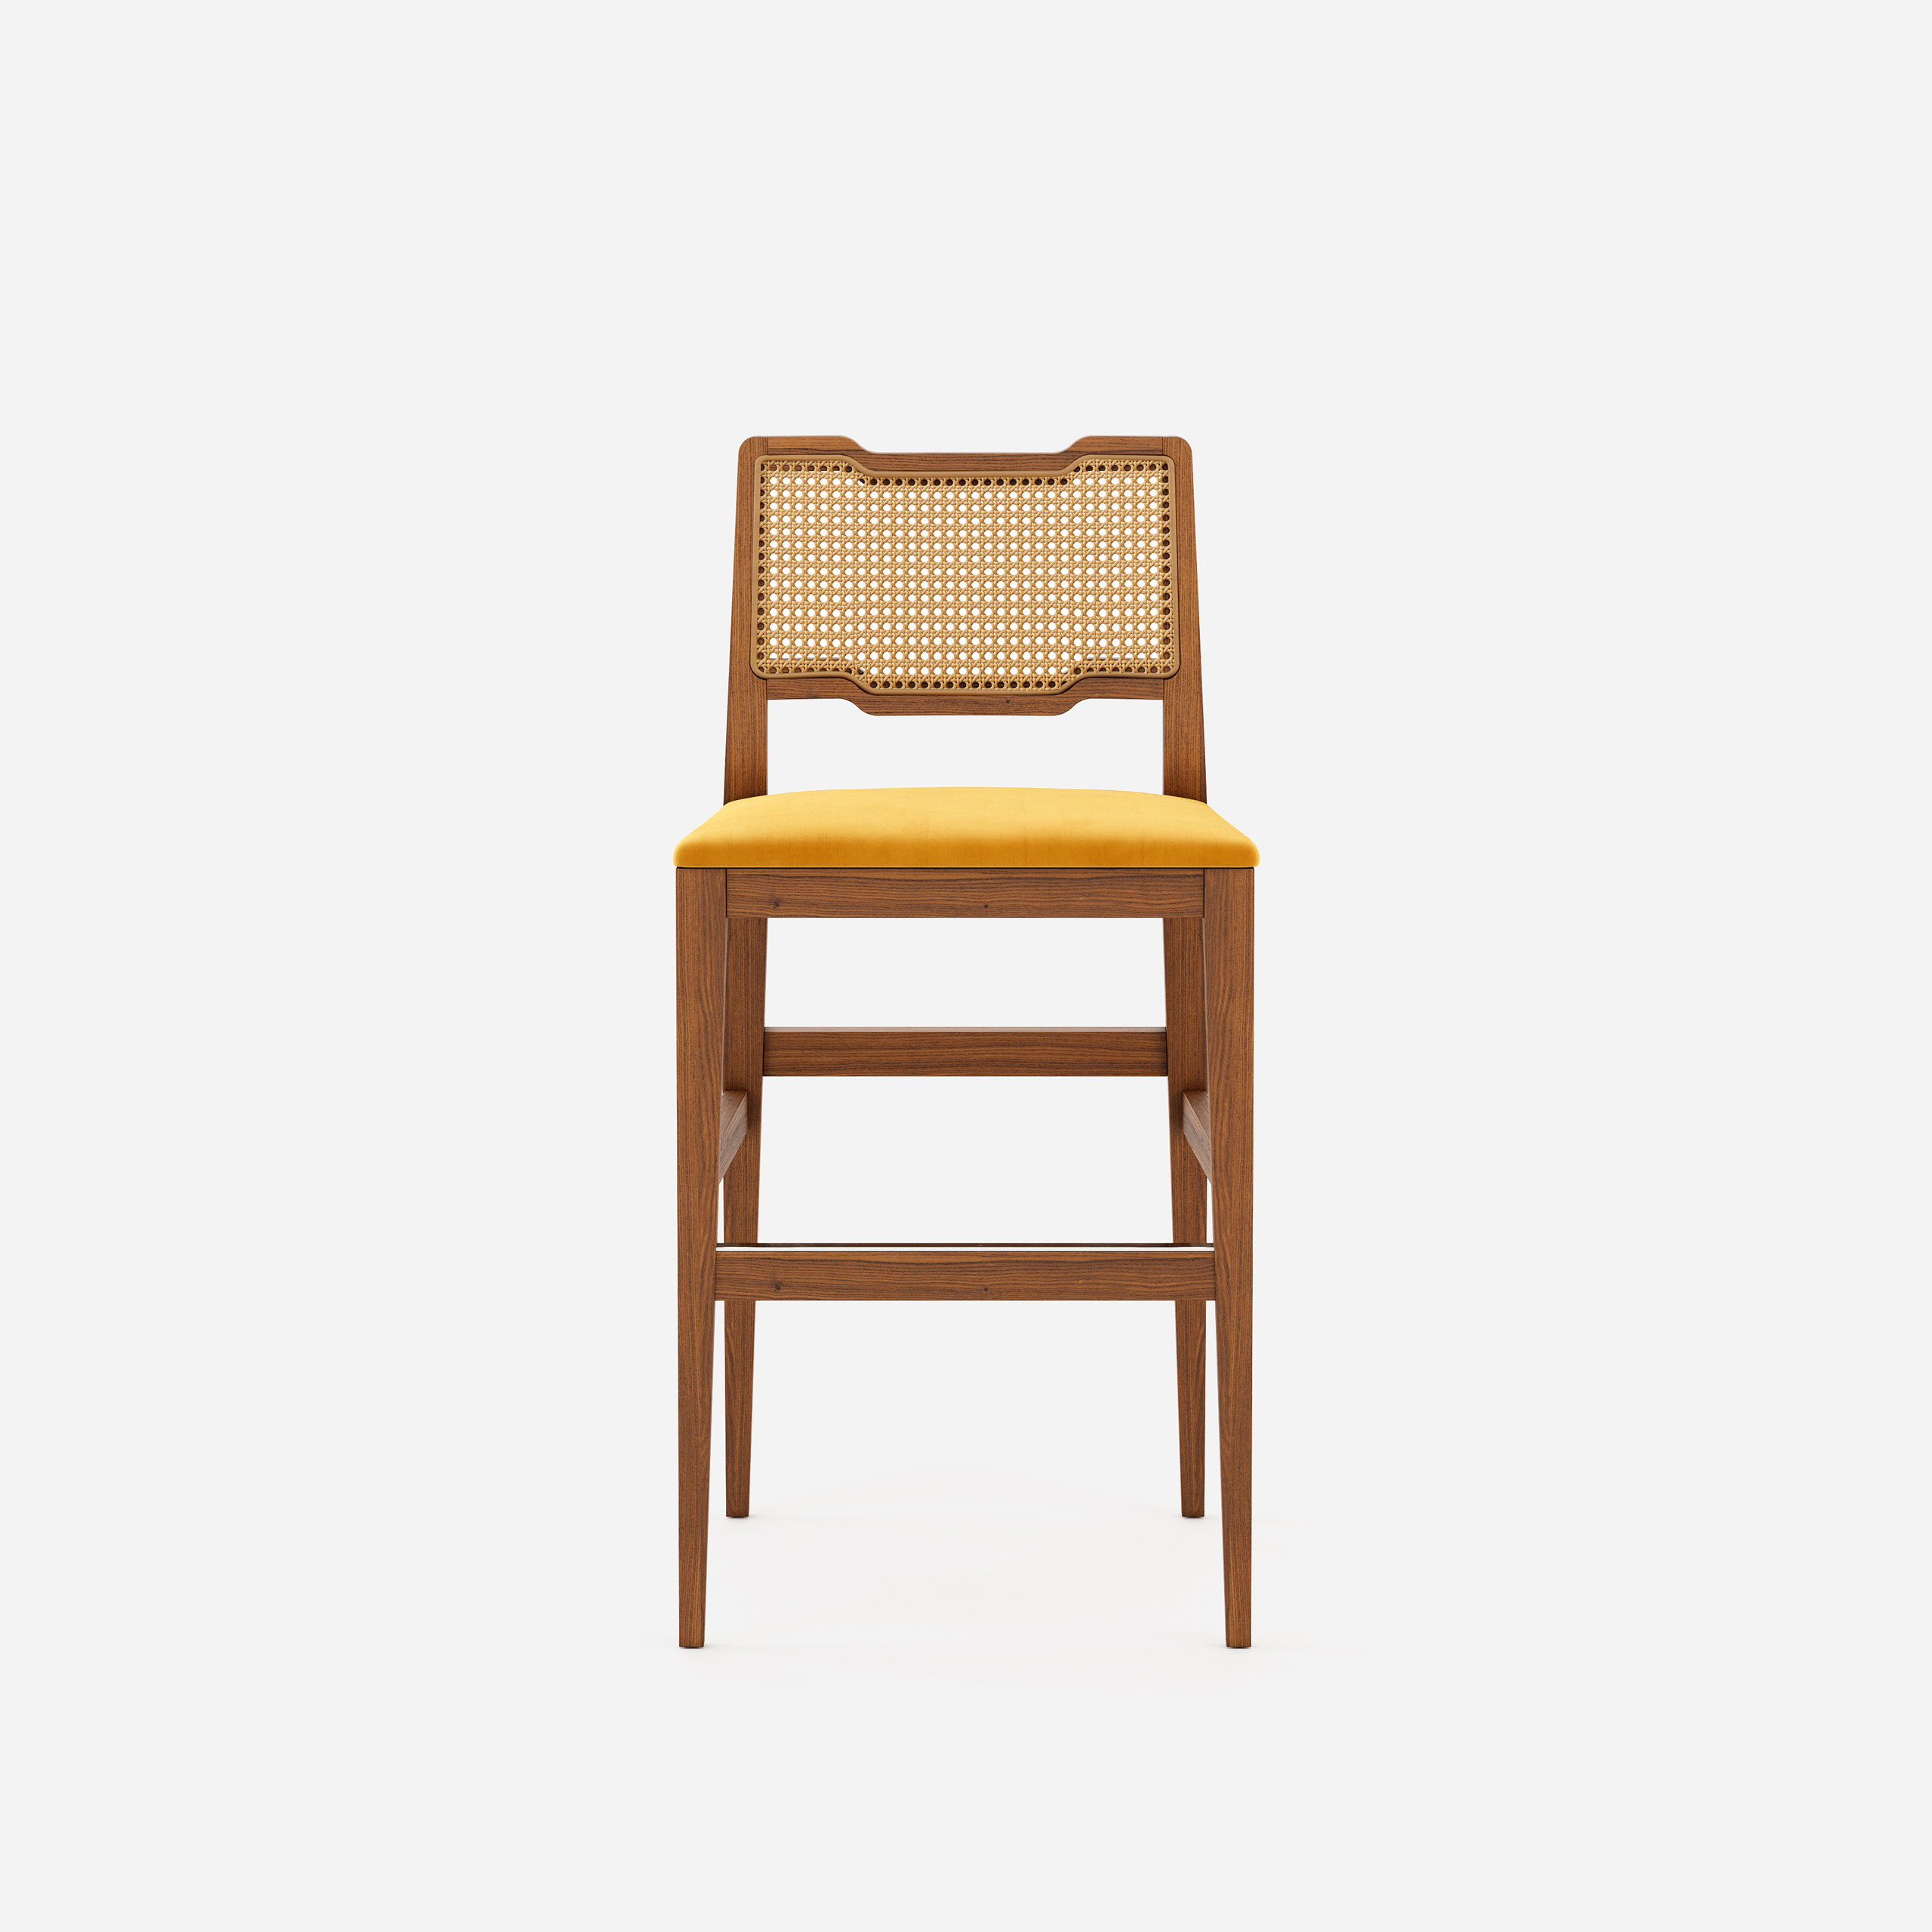 eva-counte-chair-new-collection-domkapa-2021-1